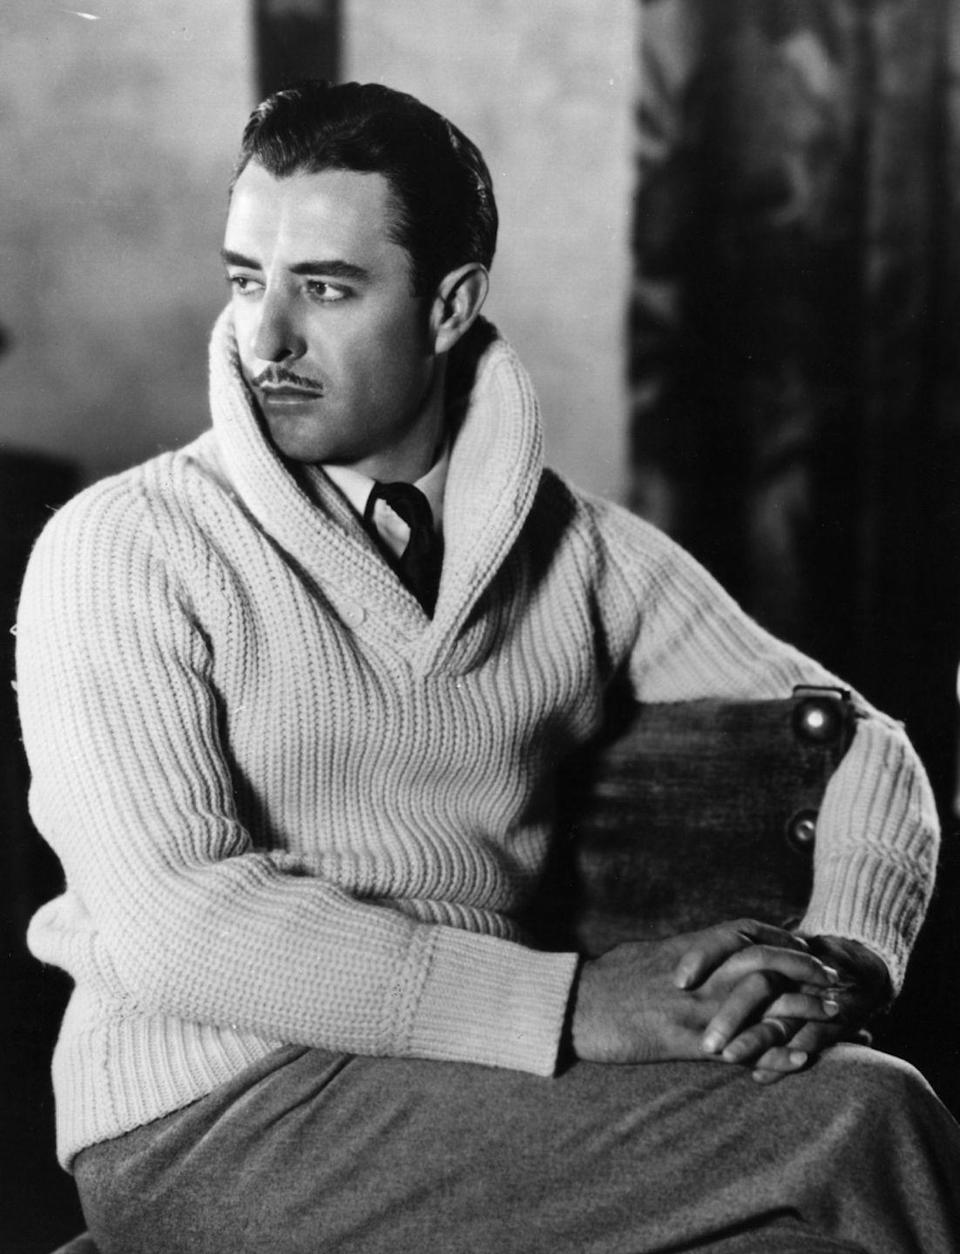 "<p>When Louis B. Mayer, cofounder of MGM, wanted to break his contract with actor John Gilbert, he planted rumors about the star and reportedly <a href=""https://www.ranker.com/list/old-hollywood-studio/anncasano"" rel=""nofollow noopener"" target=""_blank"" data-ylk=""slk:intentionally put him in bad movies"" class=""link rapid-noclick-resp"">intentionally put him in bad movies</a>. As a result, Gilbert's career tanked.</p>"